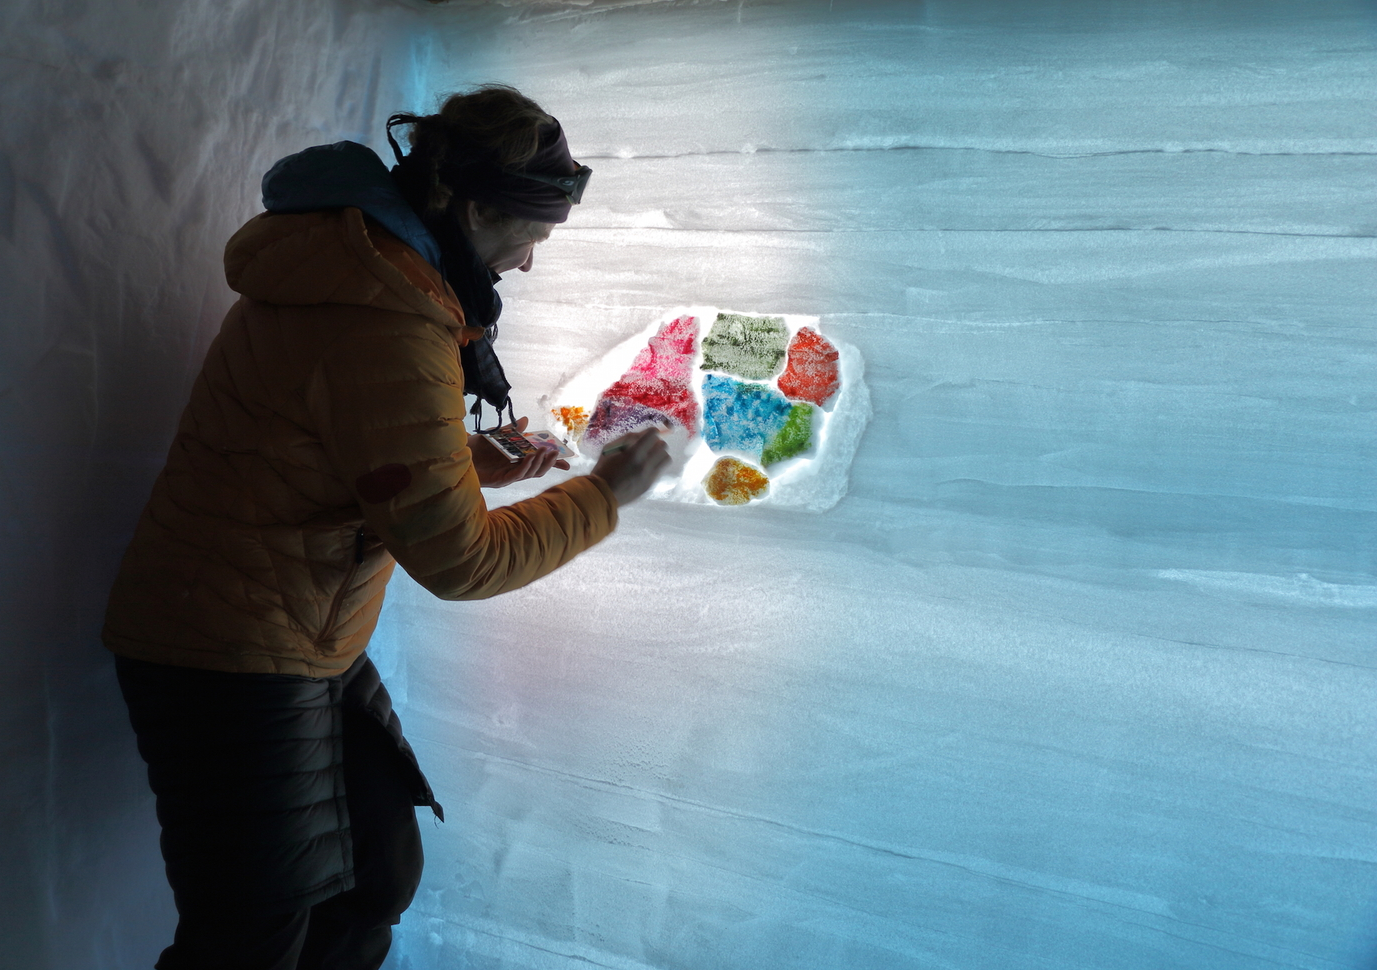 Scientist Erin Pettit expressing her inner artist inside a snowpit at WAIS Divide in January 2015.